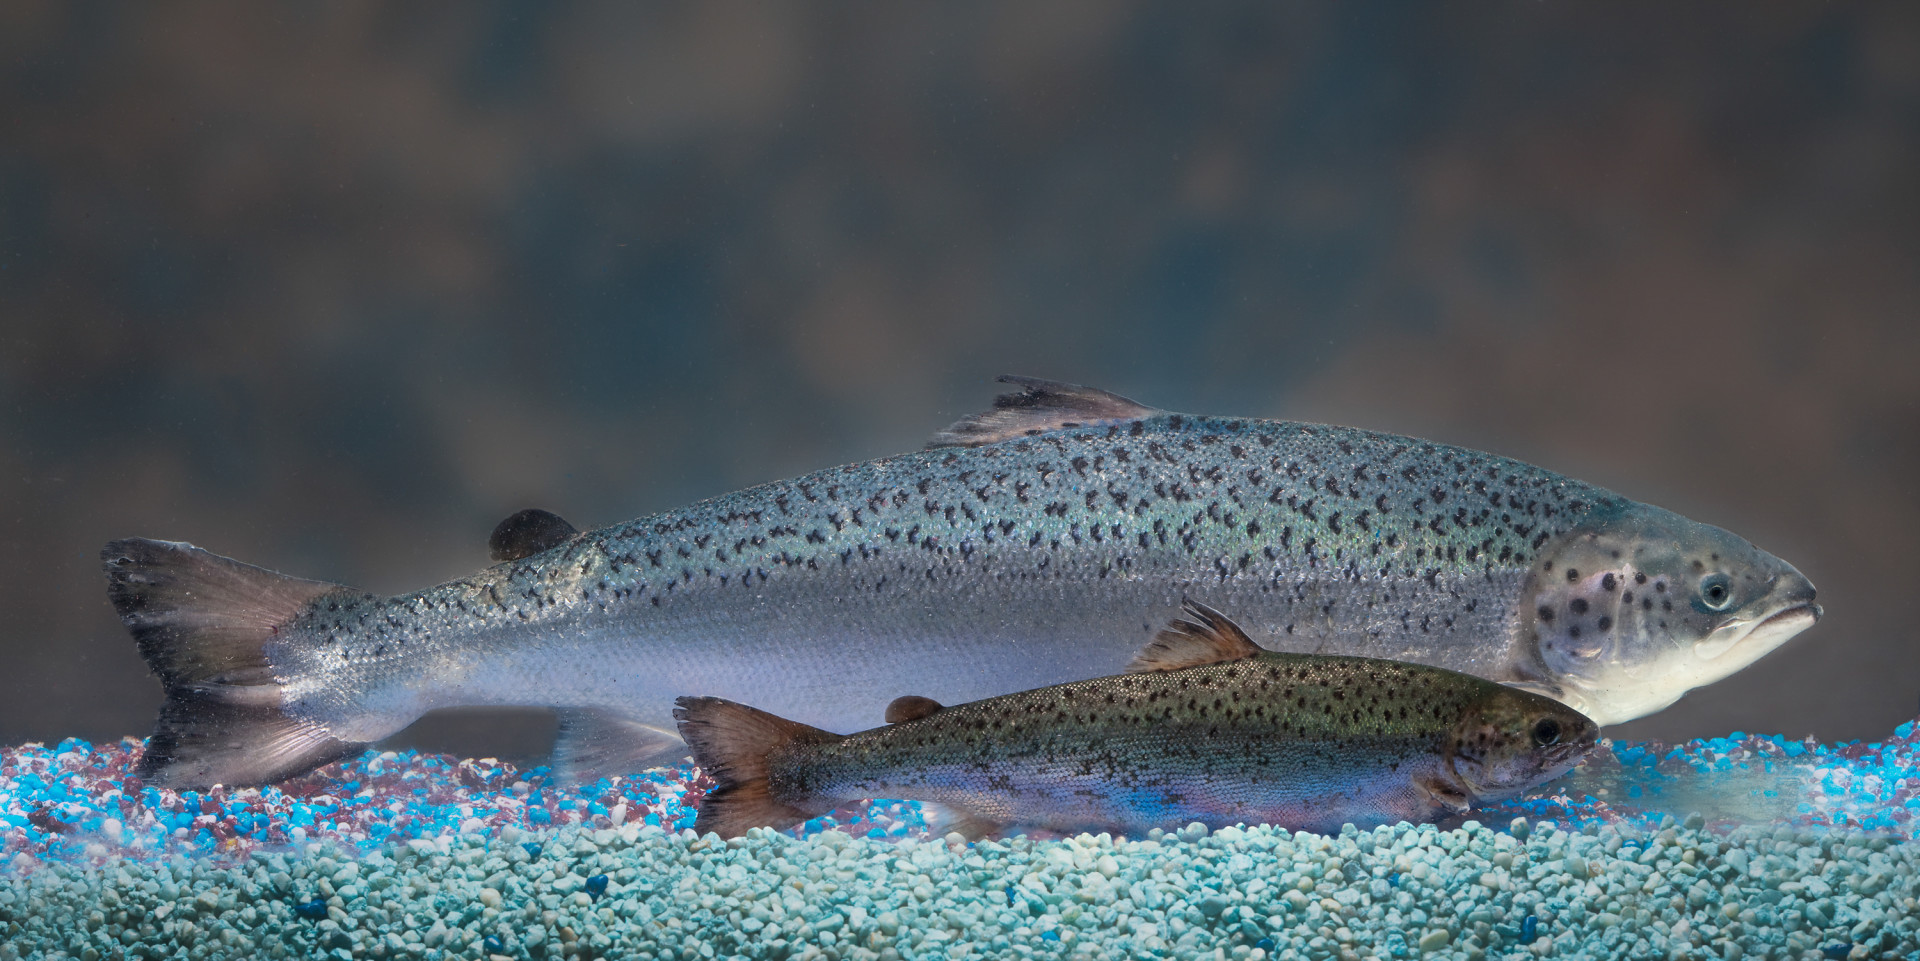 AquaBounty's salmon (background) has been genetically modified to grow bigger and faster than a conventional Atlantic salmon of the same age (foreground.)